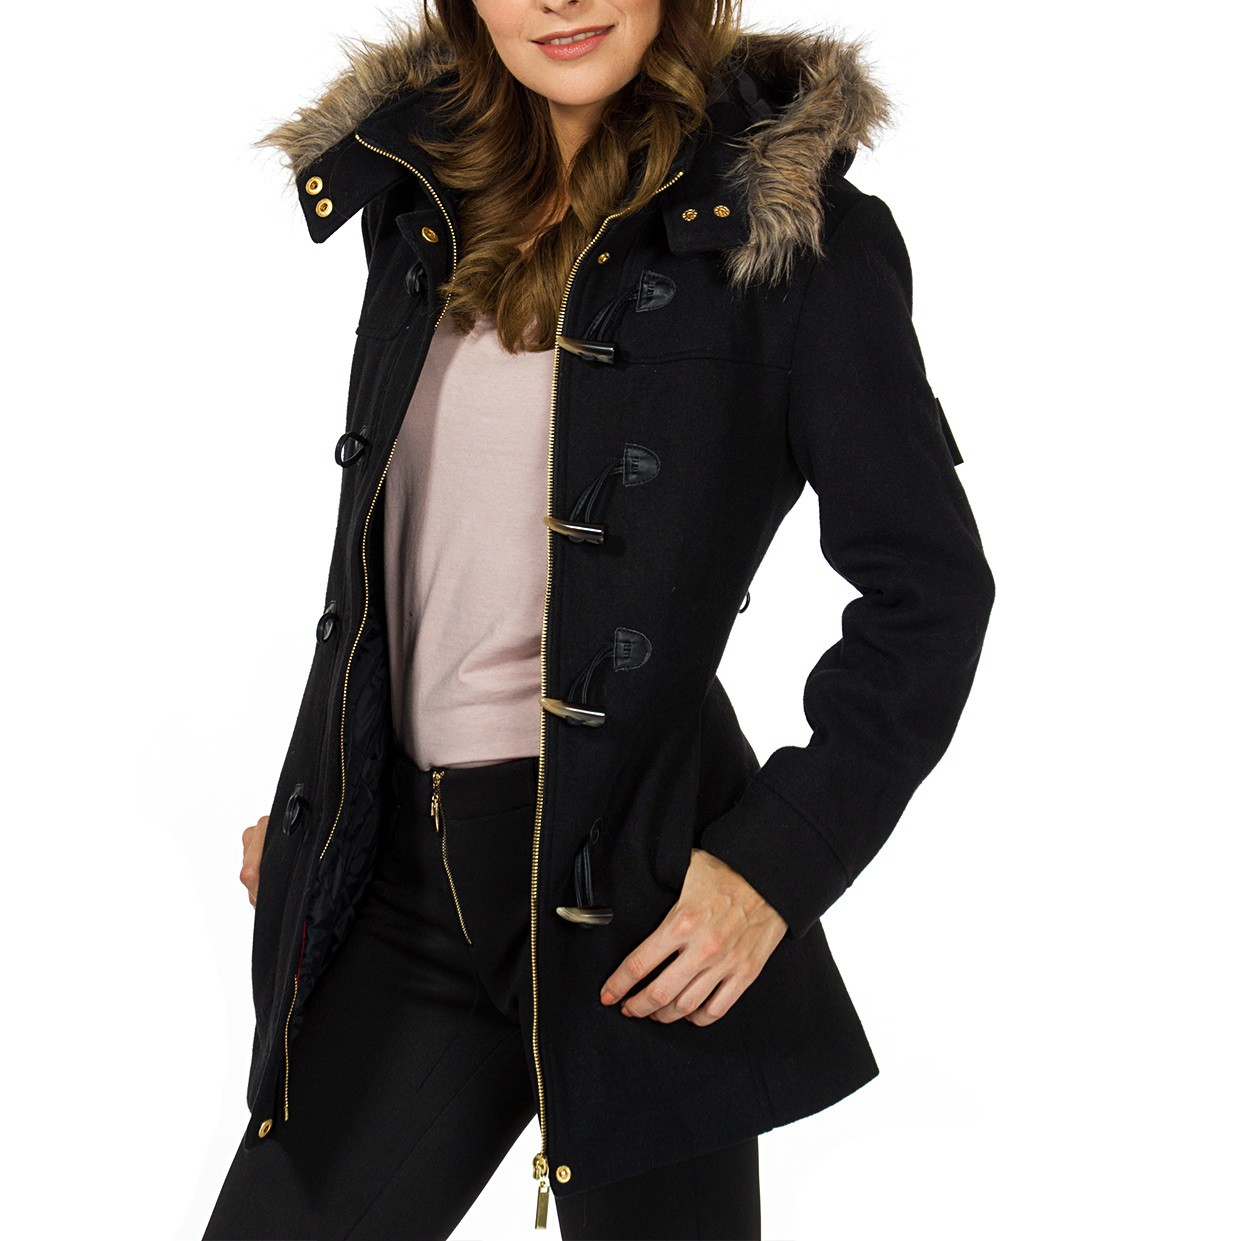 From girls' night out to opening night at the opera, Overland offers a wide selection of women's fur jackets, including 3/4-length fur coats, full-length fur jackets, reversible fur coats, and hooded fur jackets.